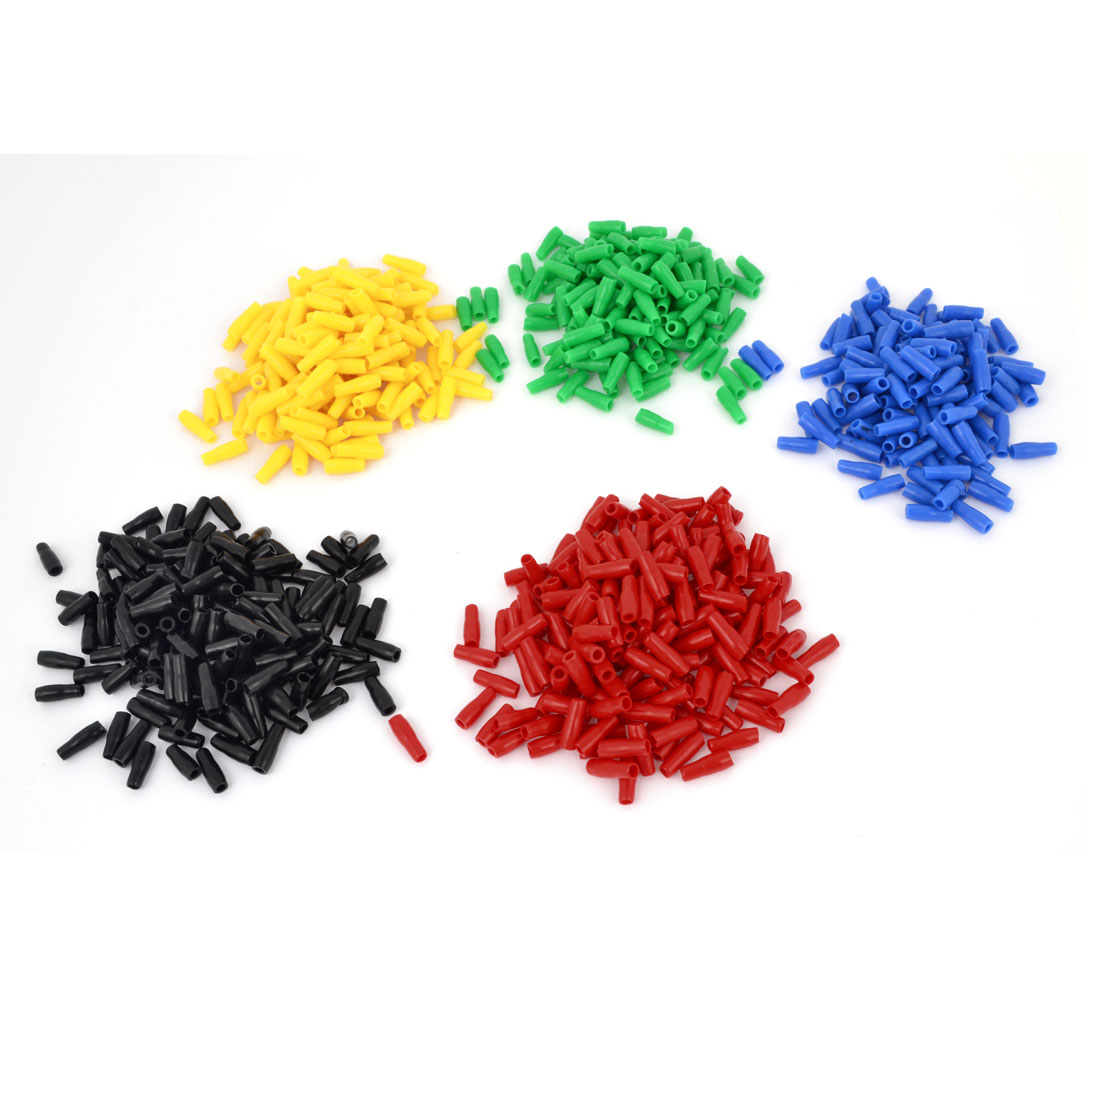 1000 Pieces Multicolor Soft PVC 2-2.5mm2 Wire Terminal End Insulated Sleeves